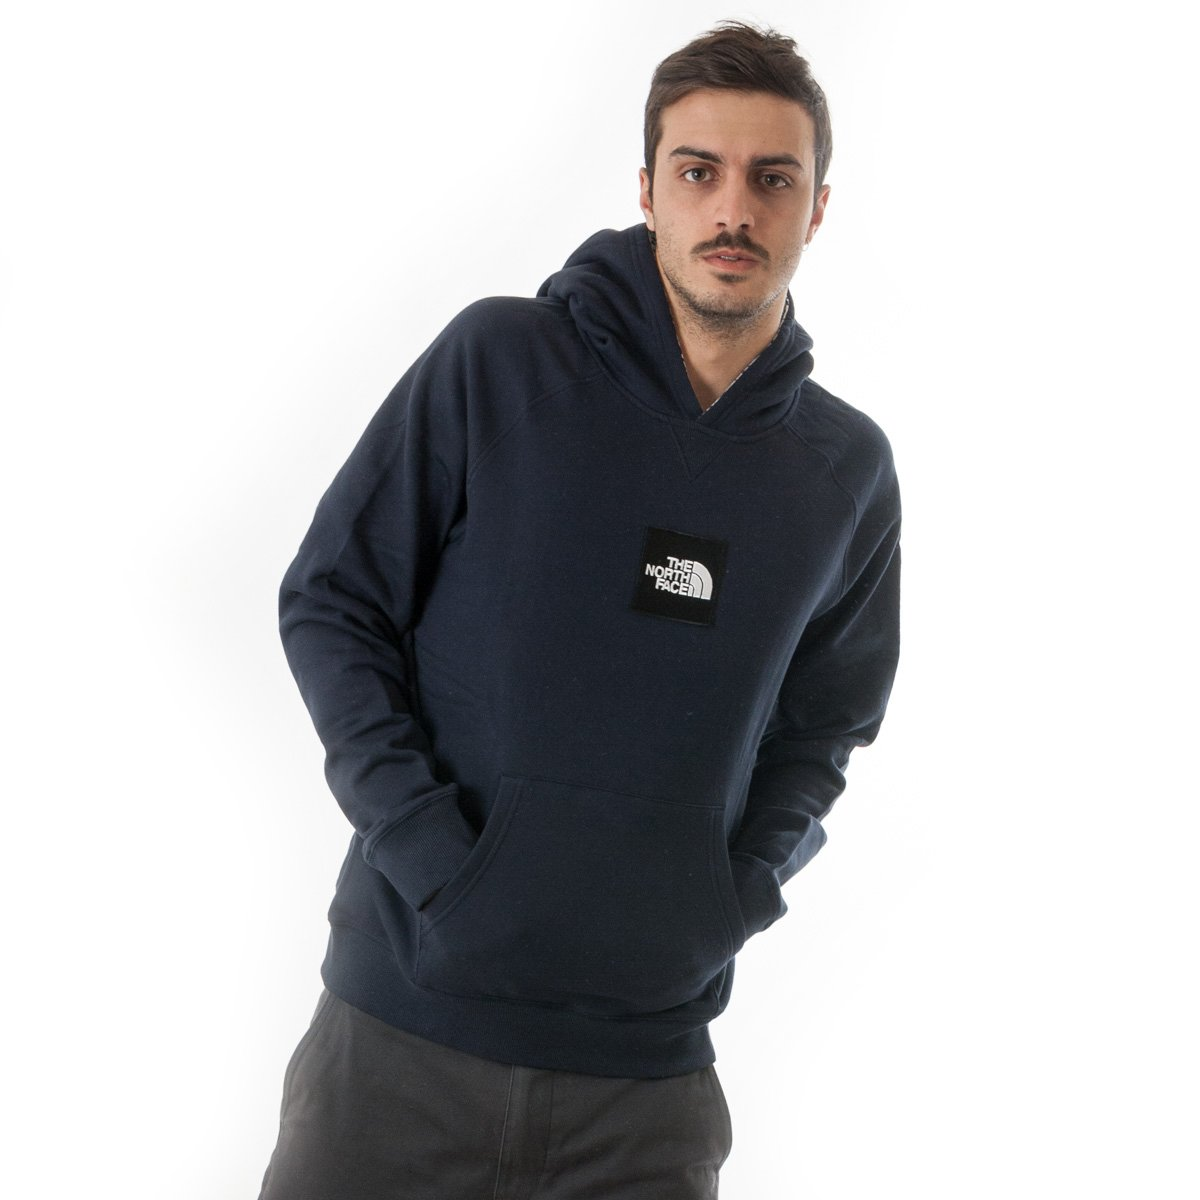 THE NORTH FACE M Fine, Sweatshirt